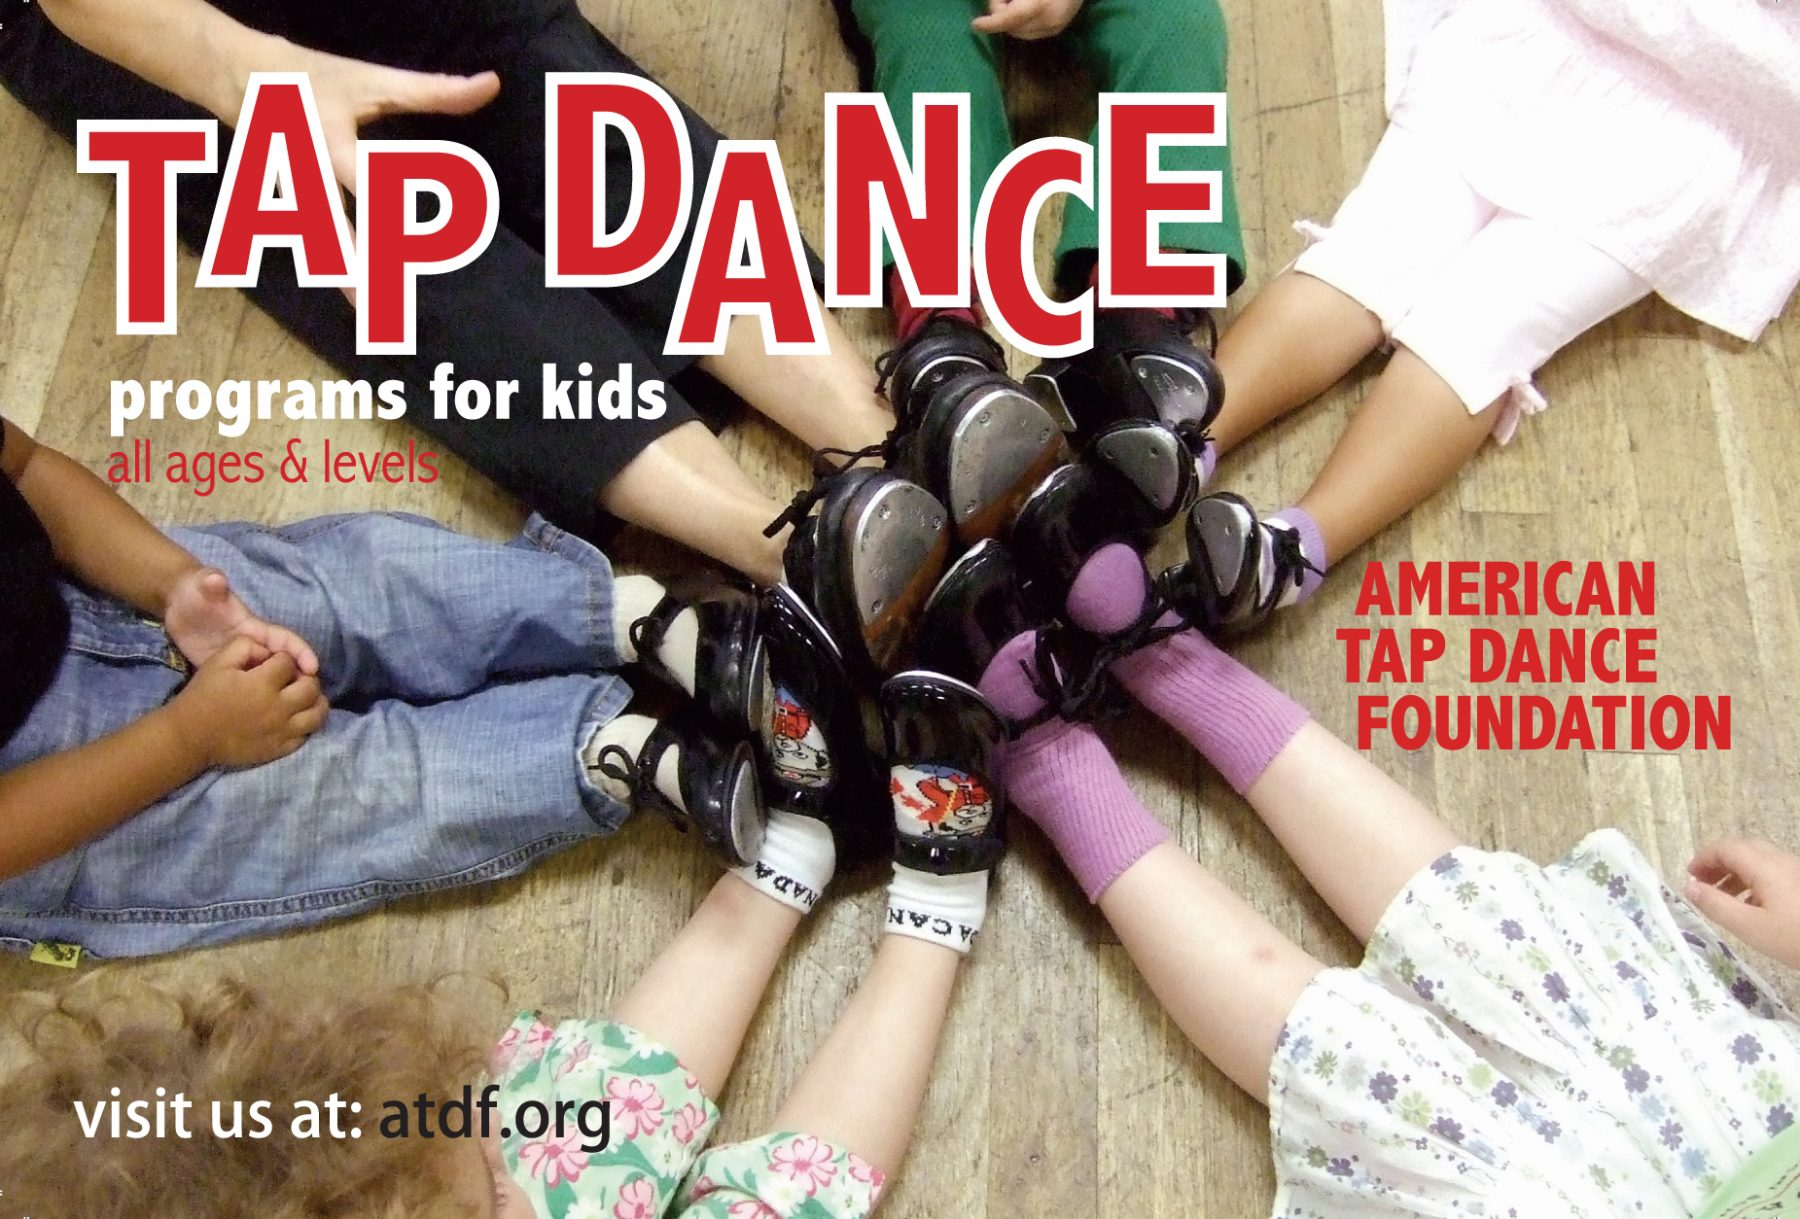 American Tap Dance Foundation Youth Programs for Children and Teens